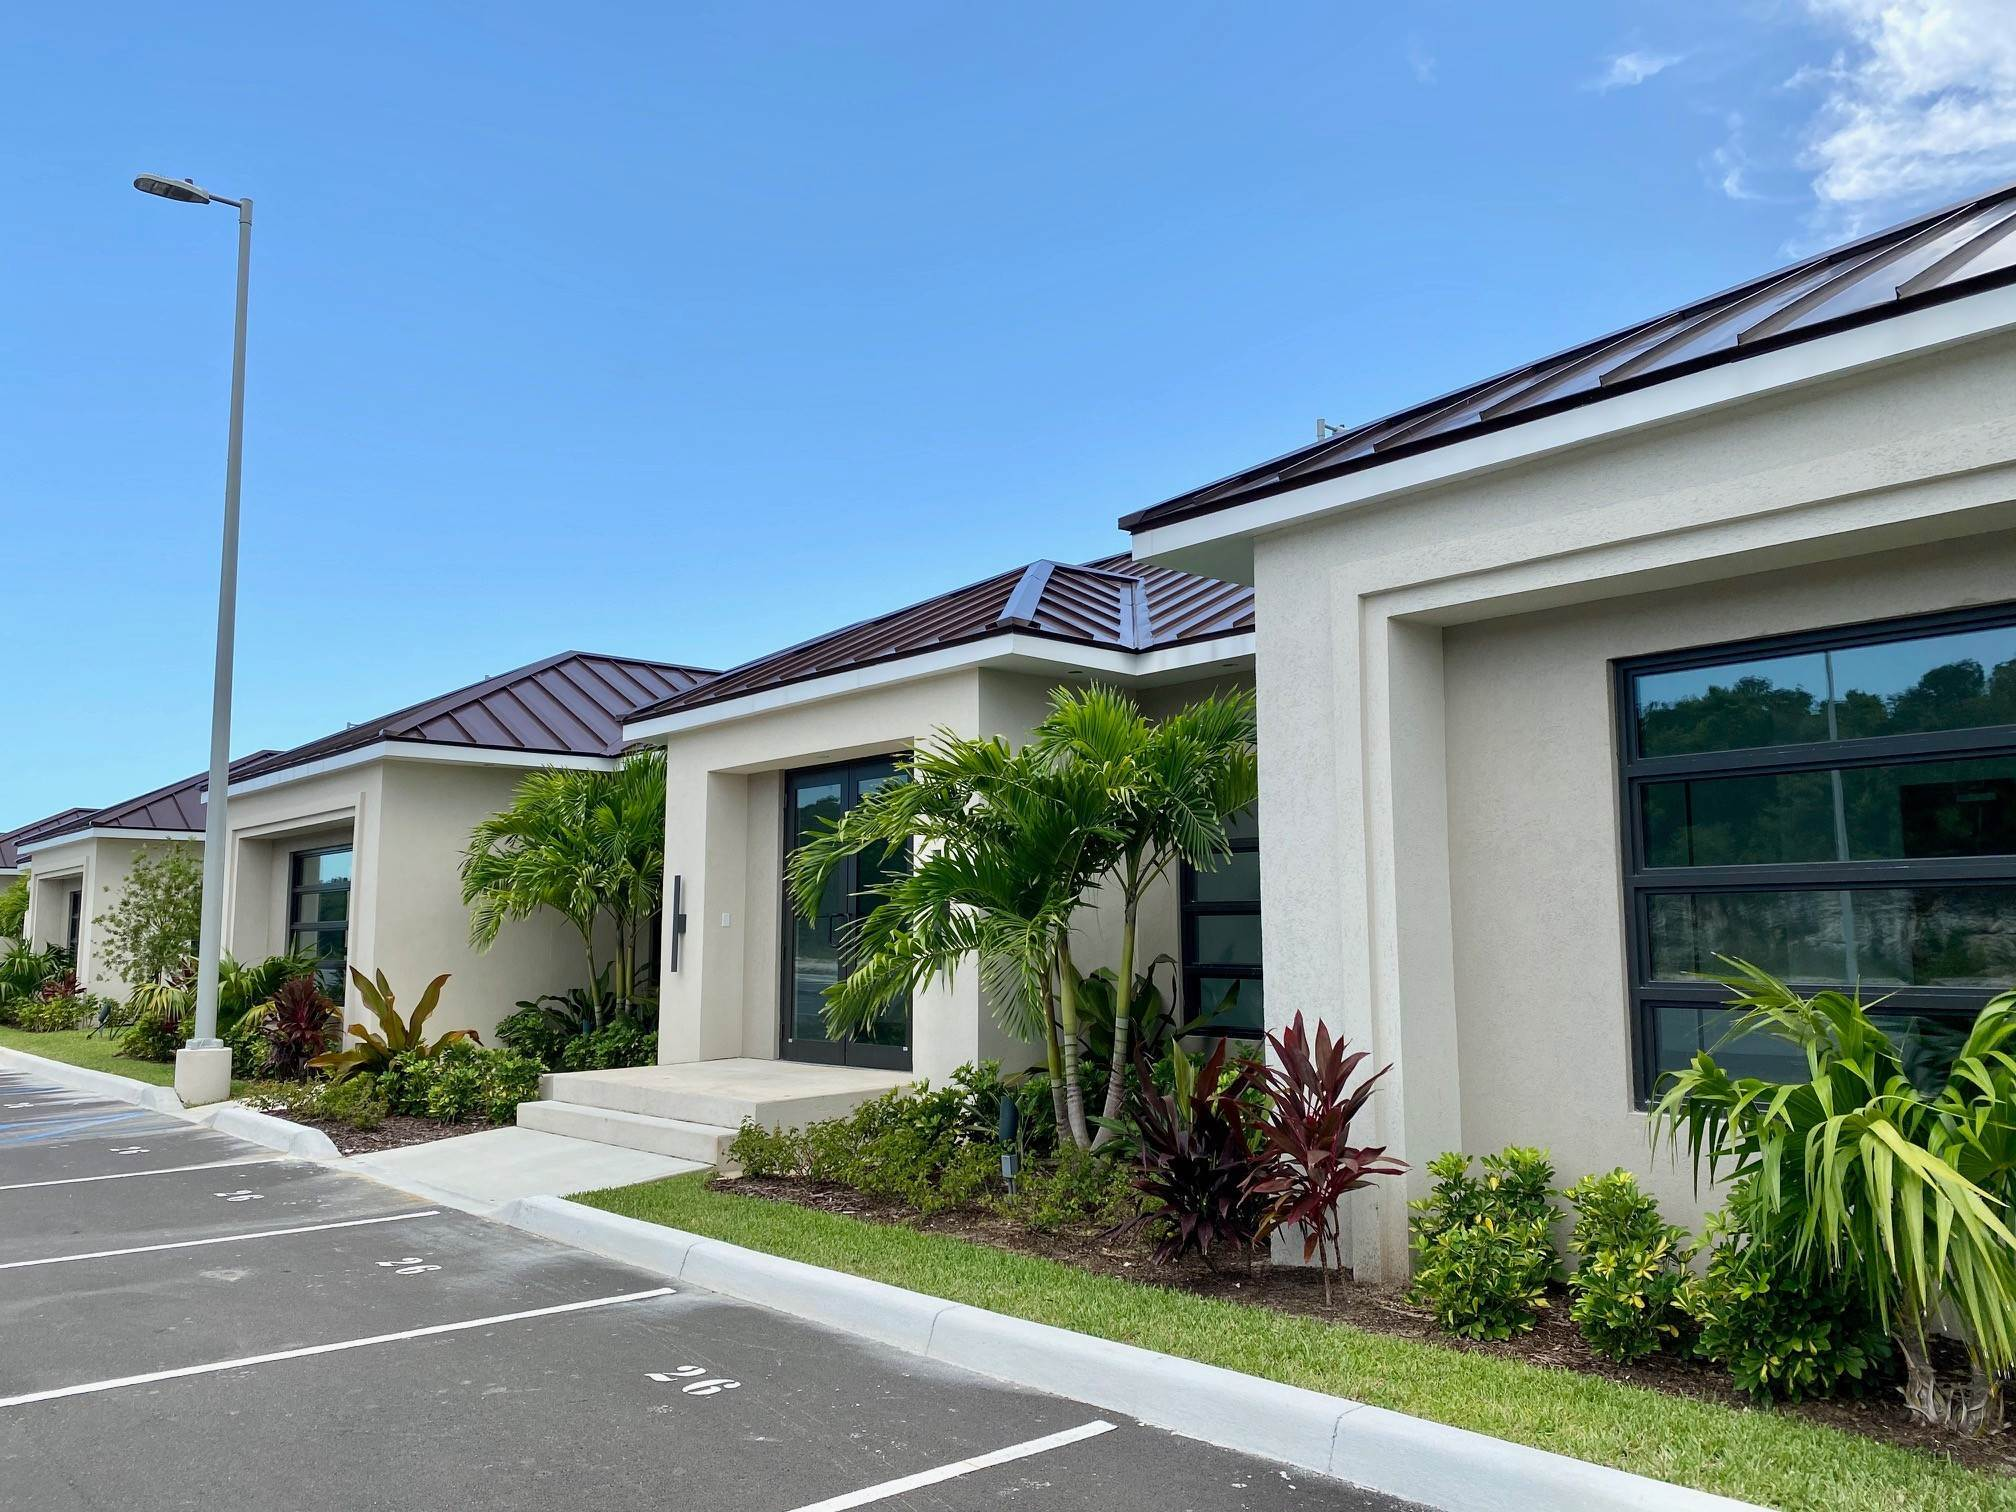 Commercial for Rent at Astoria at The Veridian Corporate Center Western Road, Nassau And Paradise Island, Bahamas